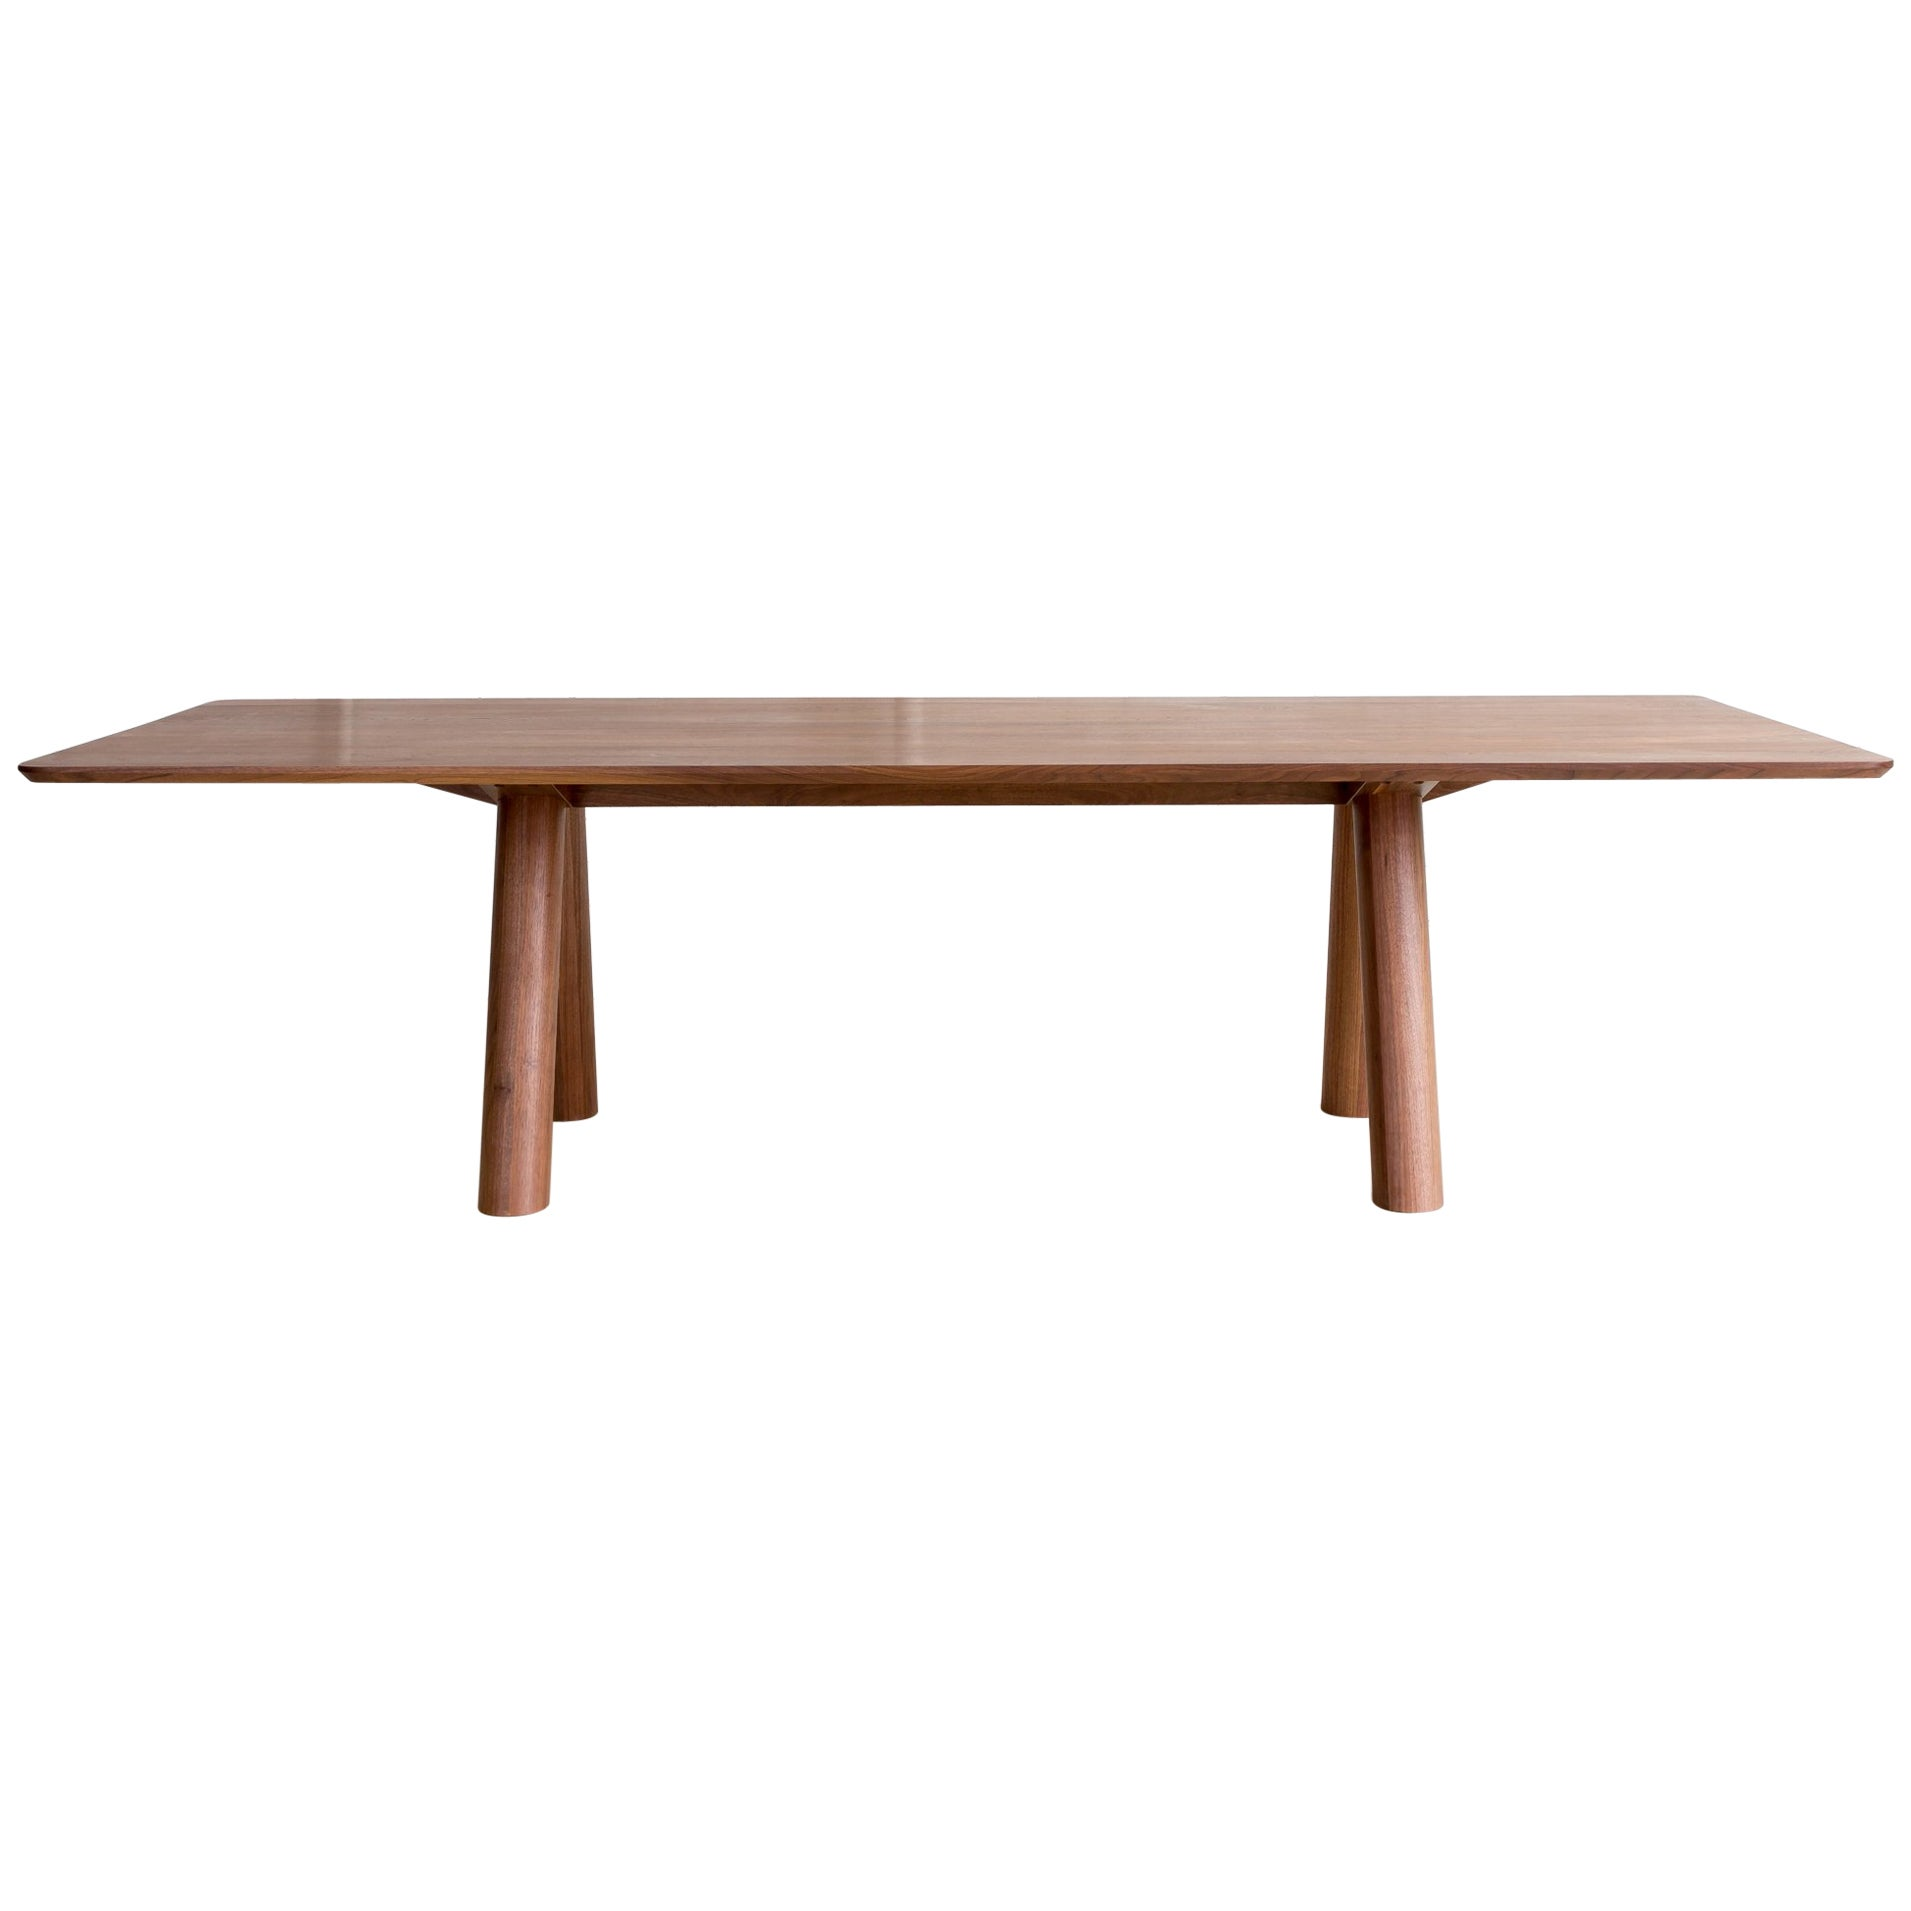 Contemporary Angled Leg Column Dining Table in Walnut Wood by Fort Standard